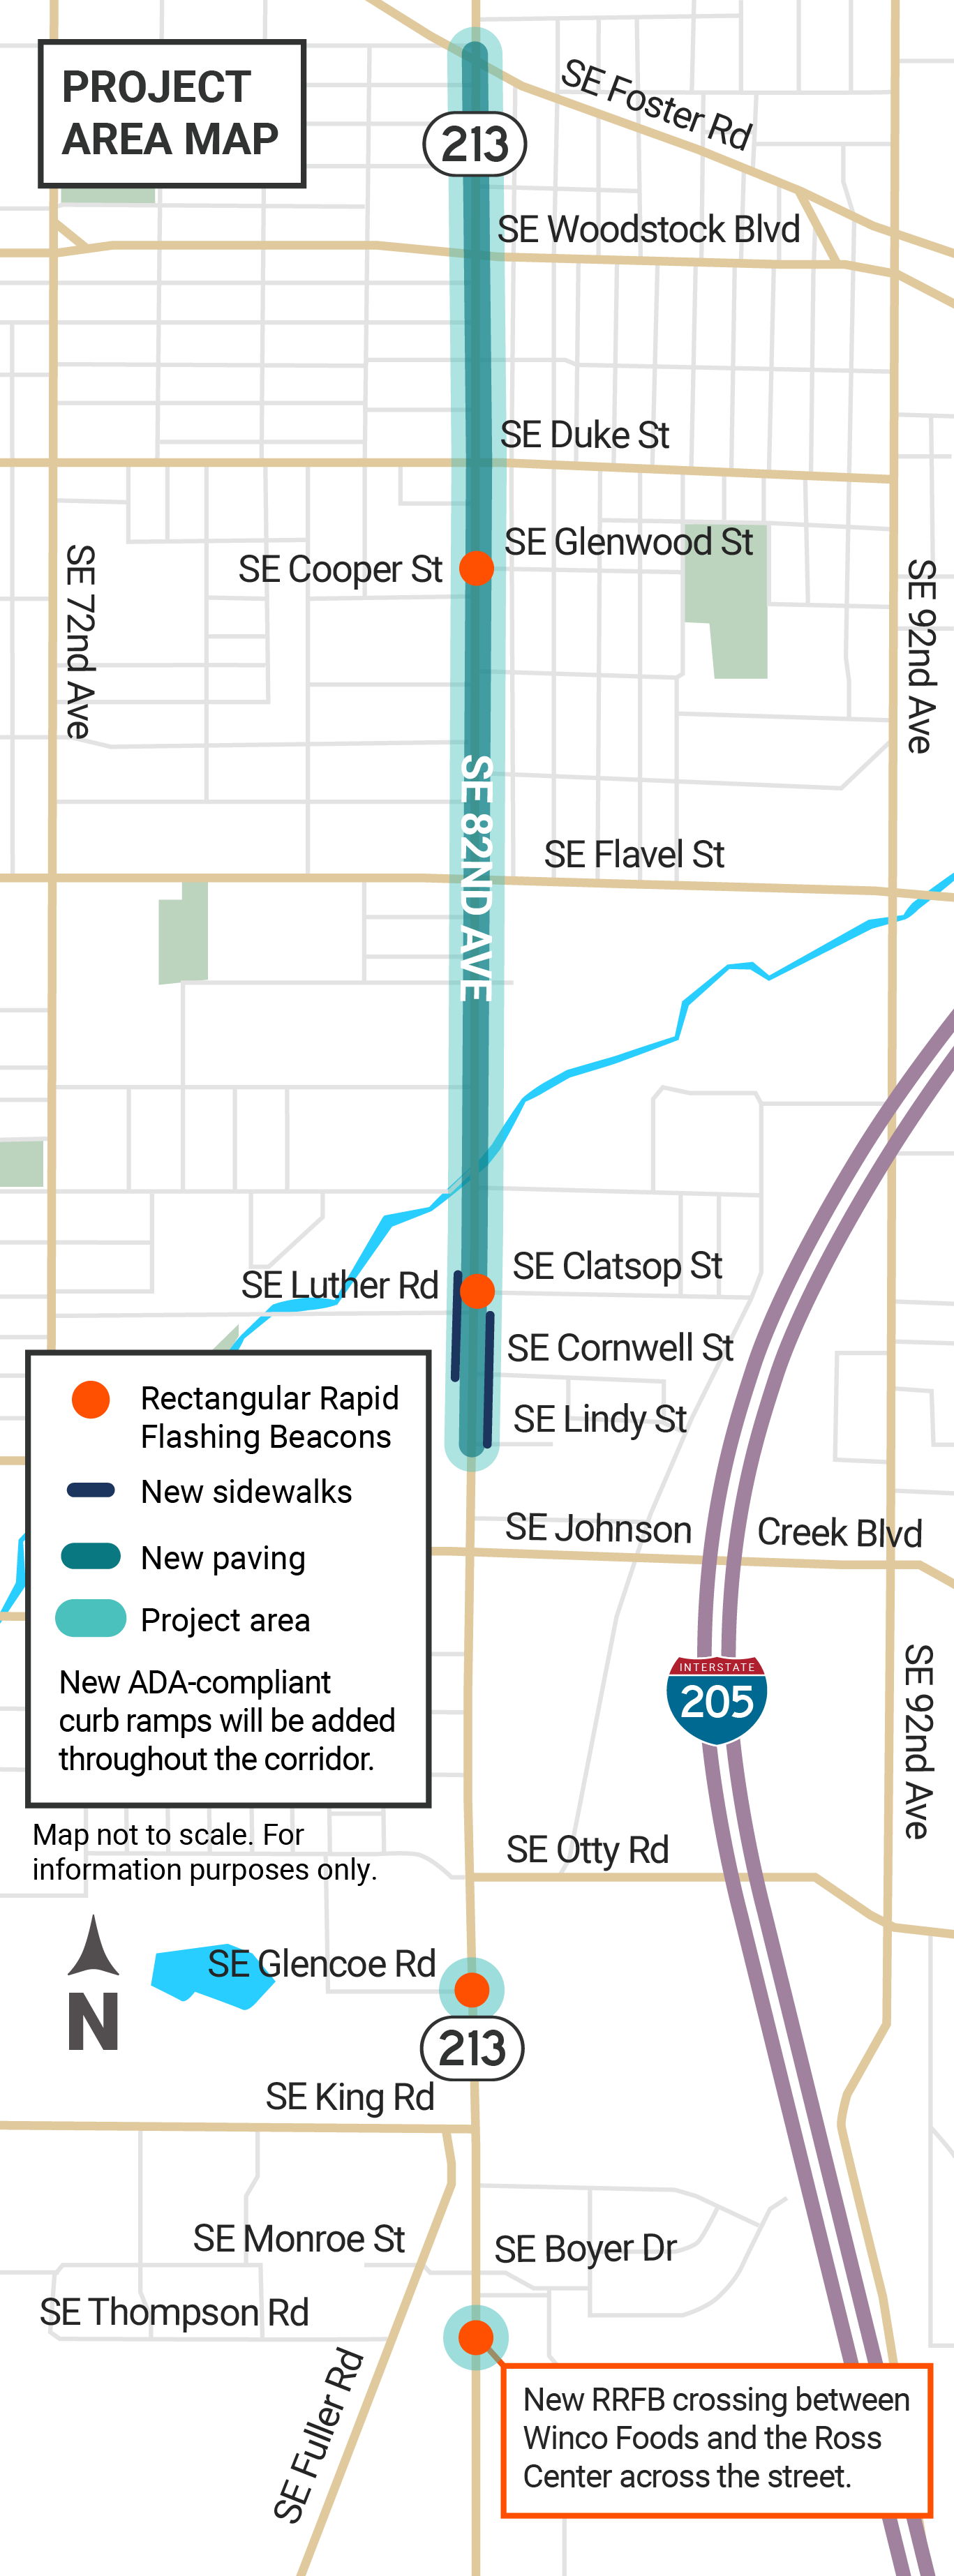 Map of the OR 213 project corridor